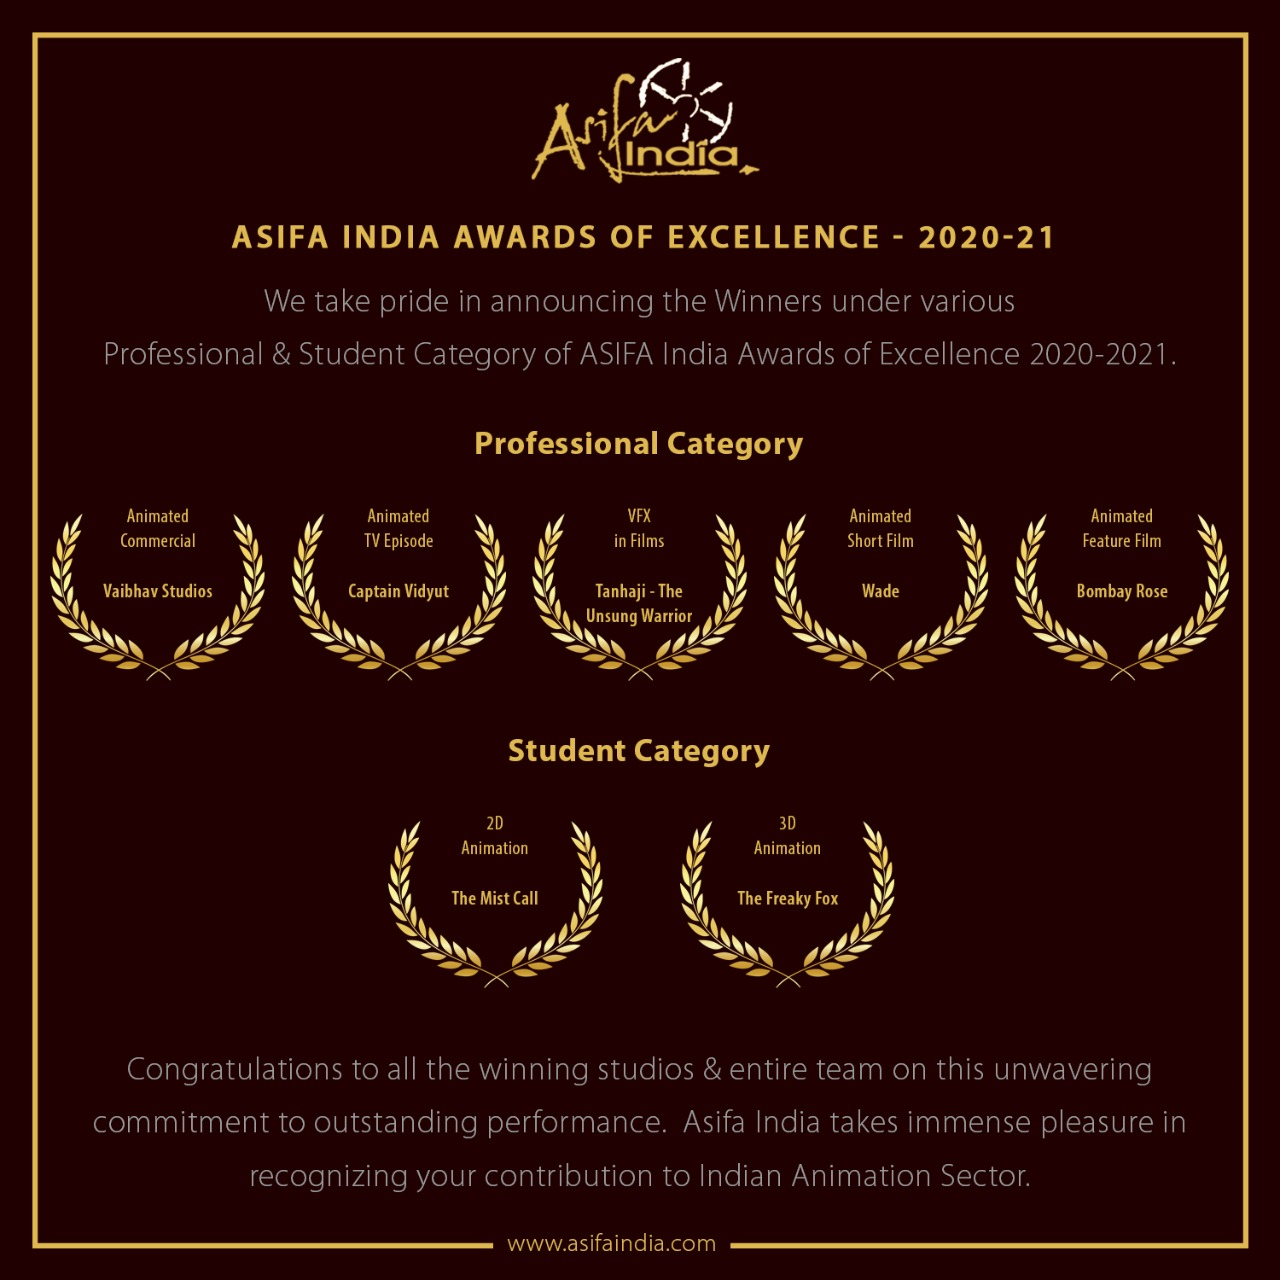 Asifa Award of Excellence